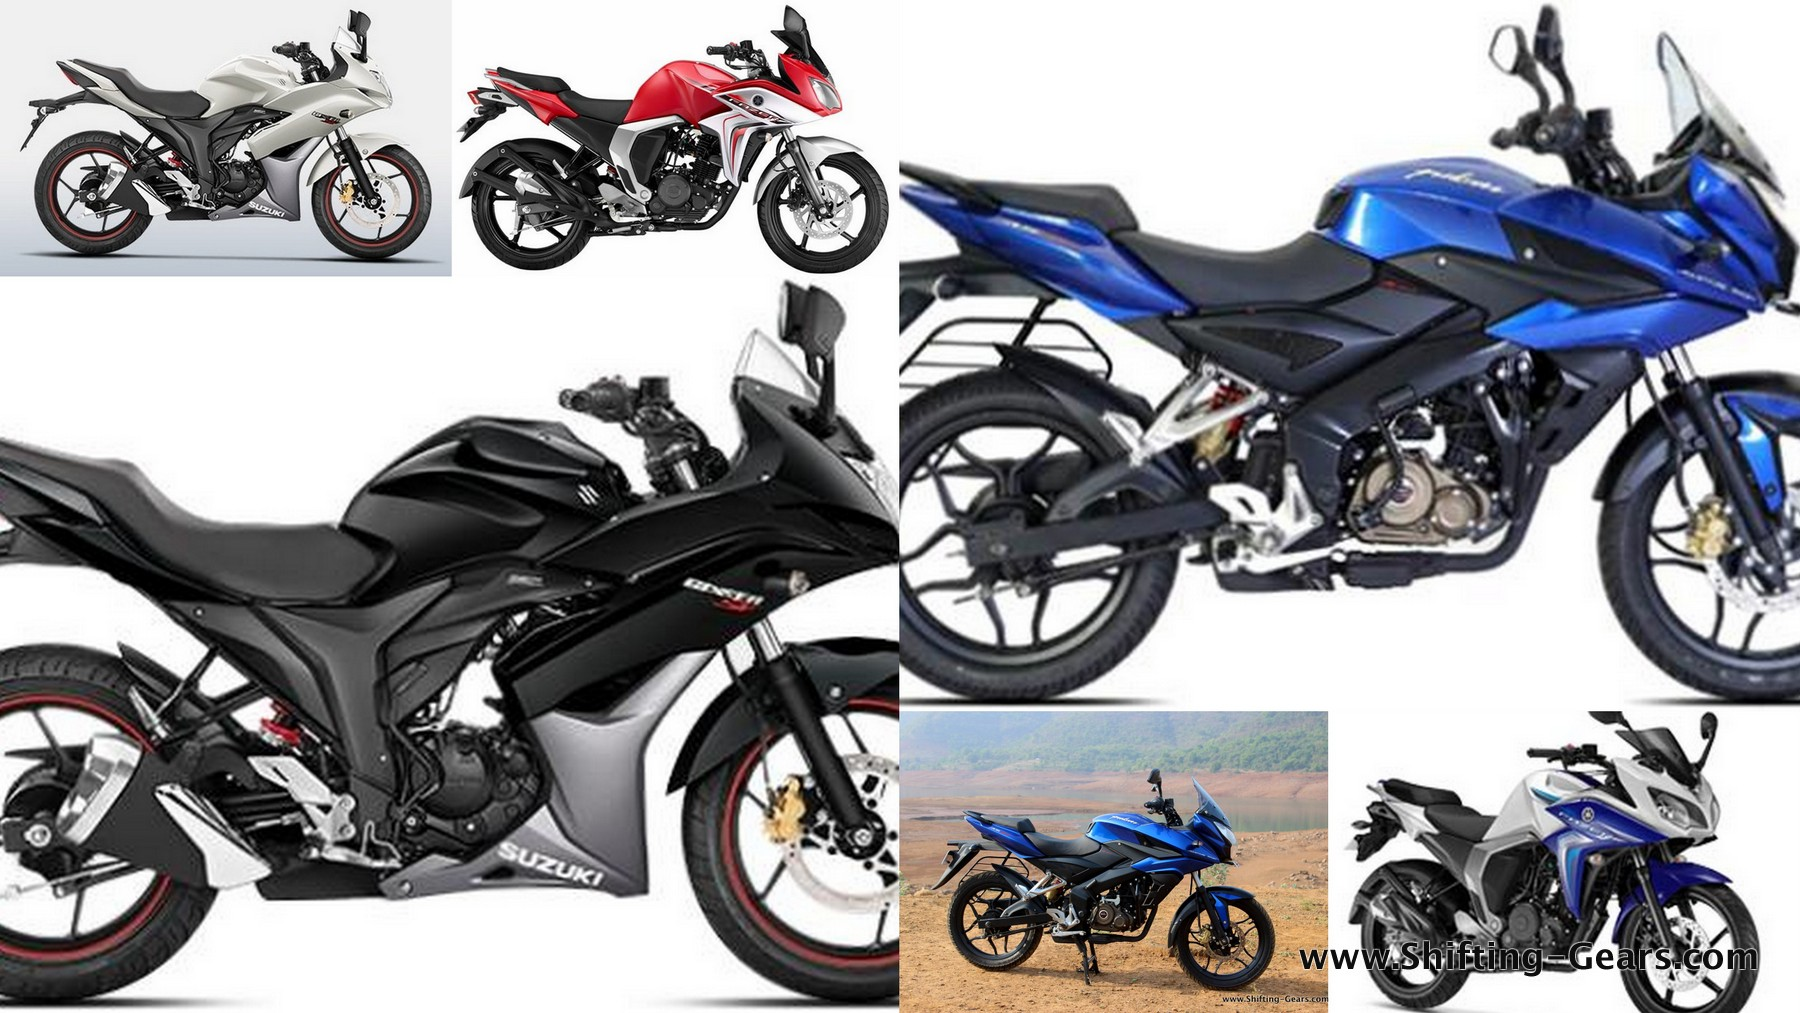 Suzuki Gixxer SF Vs. Bajaj Pulsar AS150 Vs. Yamaha Fazer